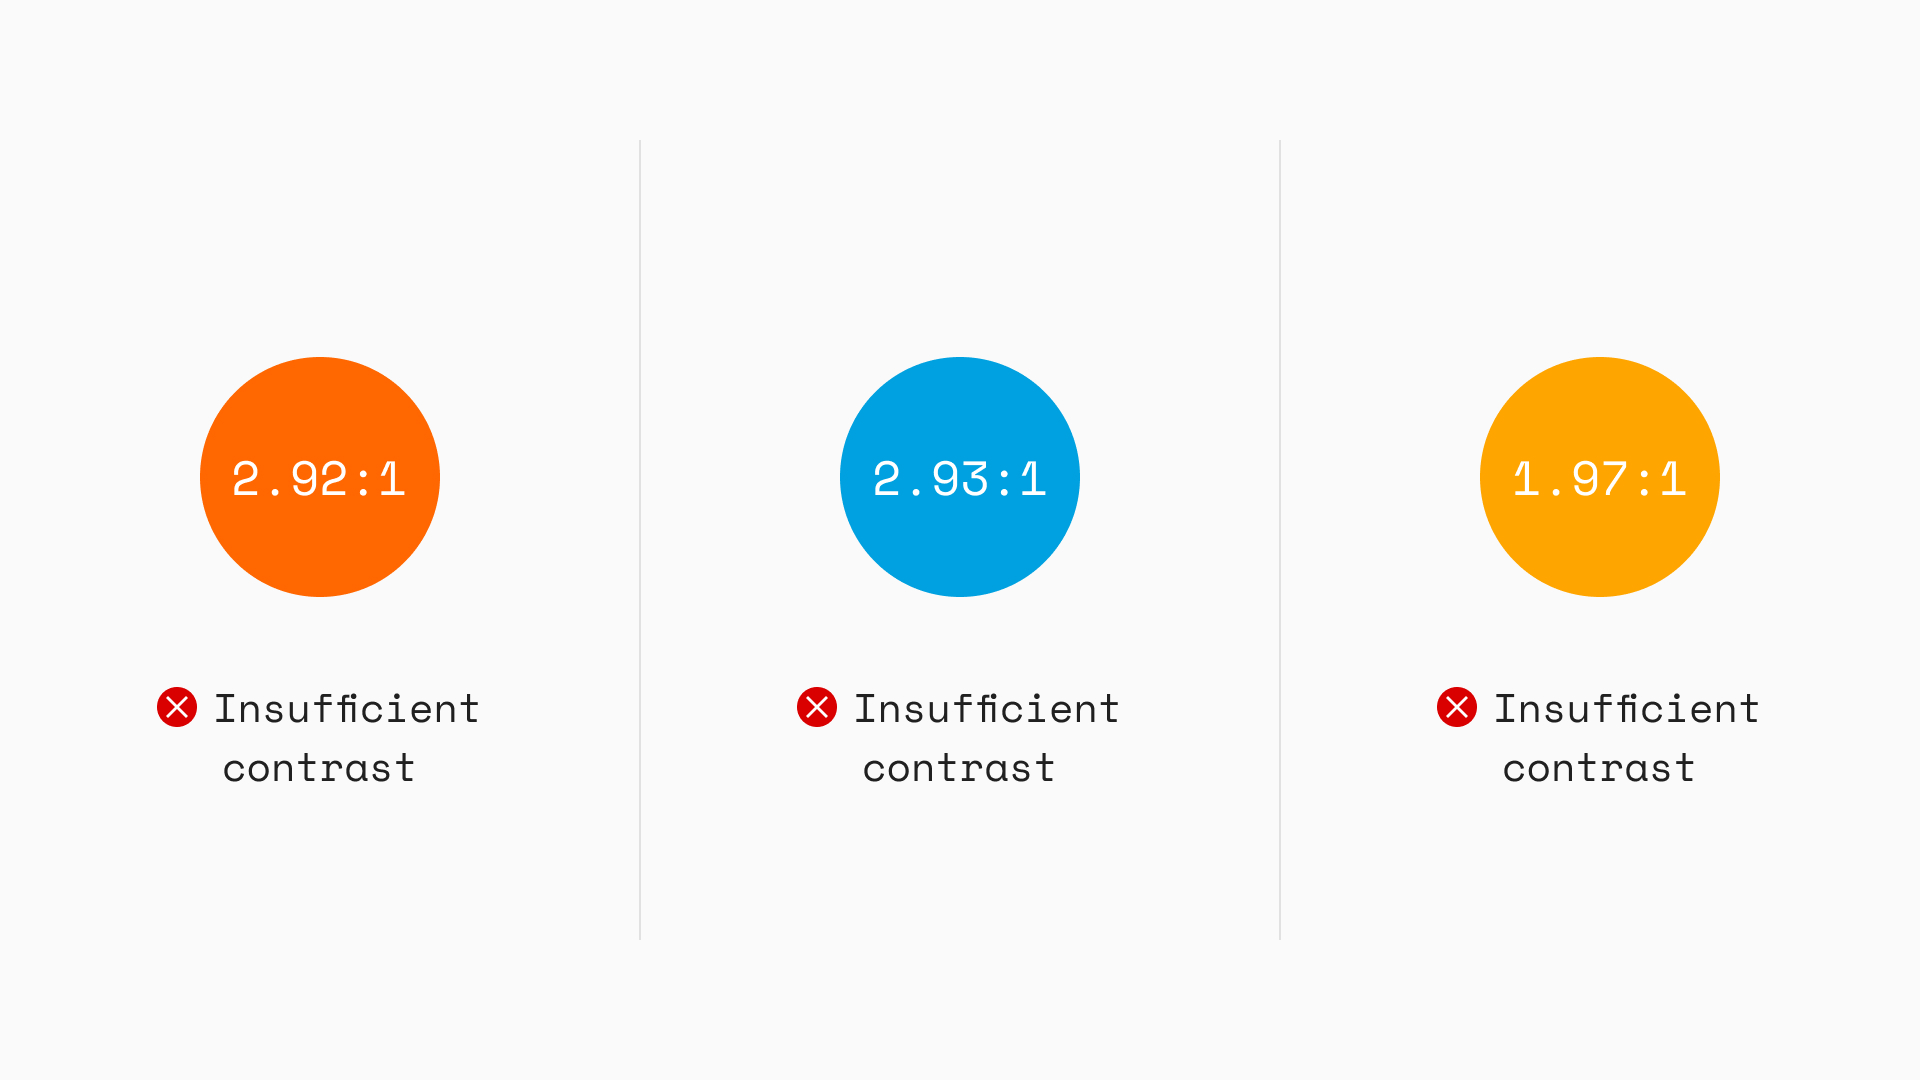 Three examples of various contrast ratios, all of them insufficient in terms of readability guidelines.